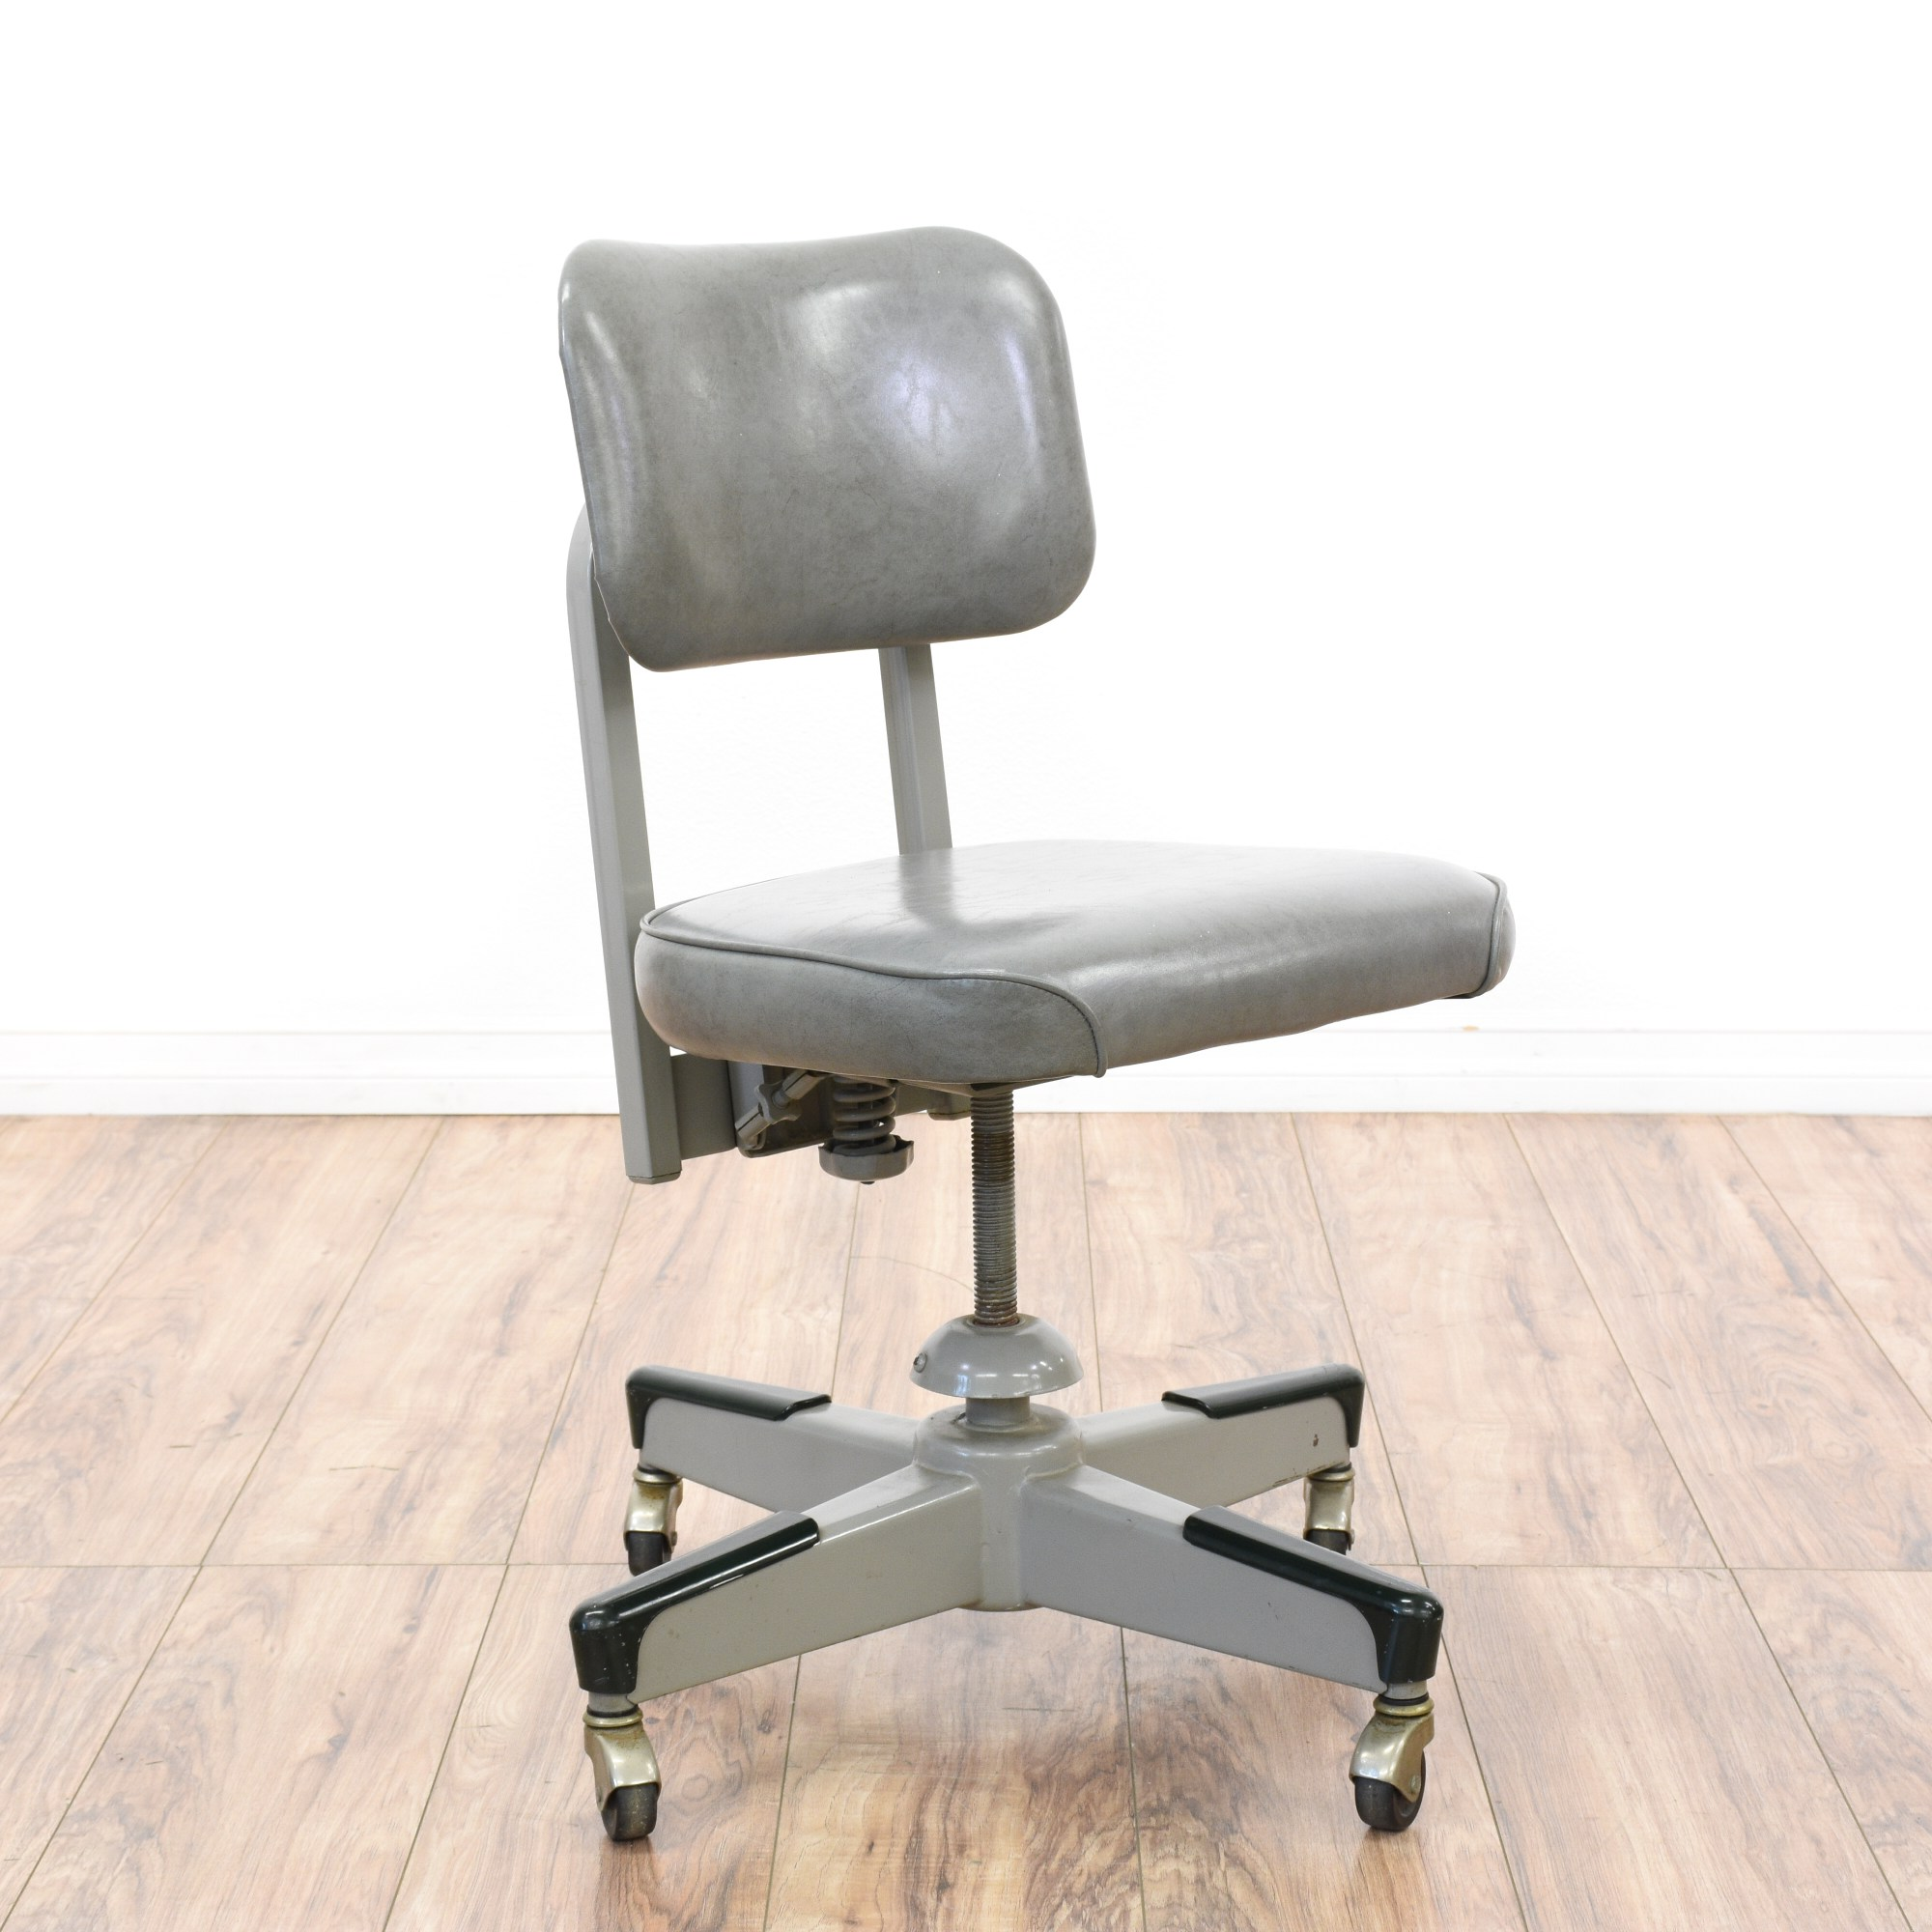 Retro Desk Chair Retro Industrial Gray Vinyl And Metal Office Chair